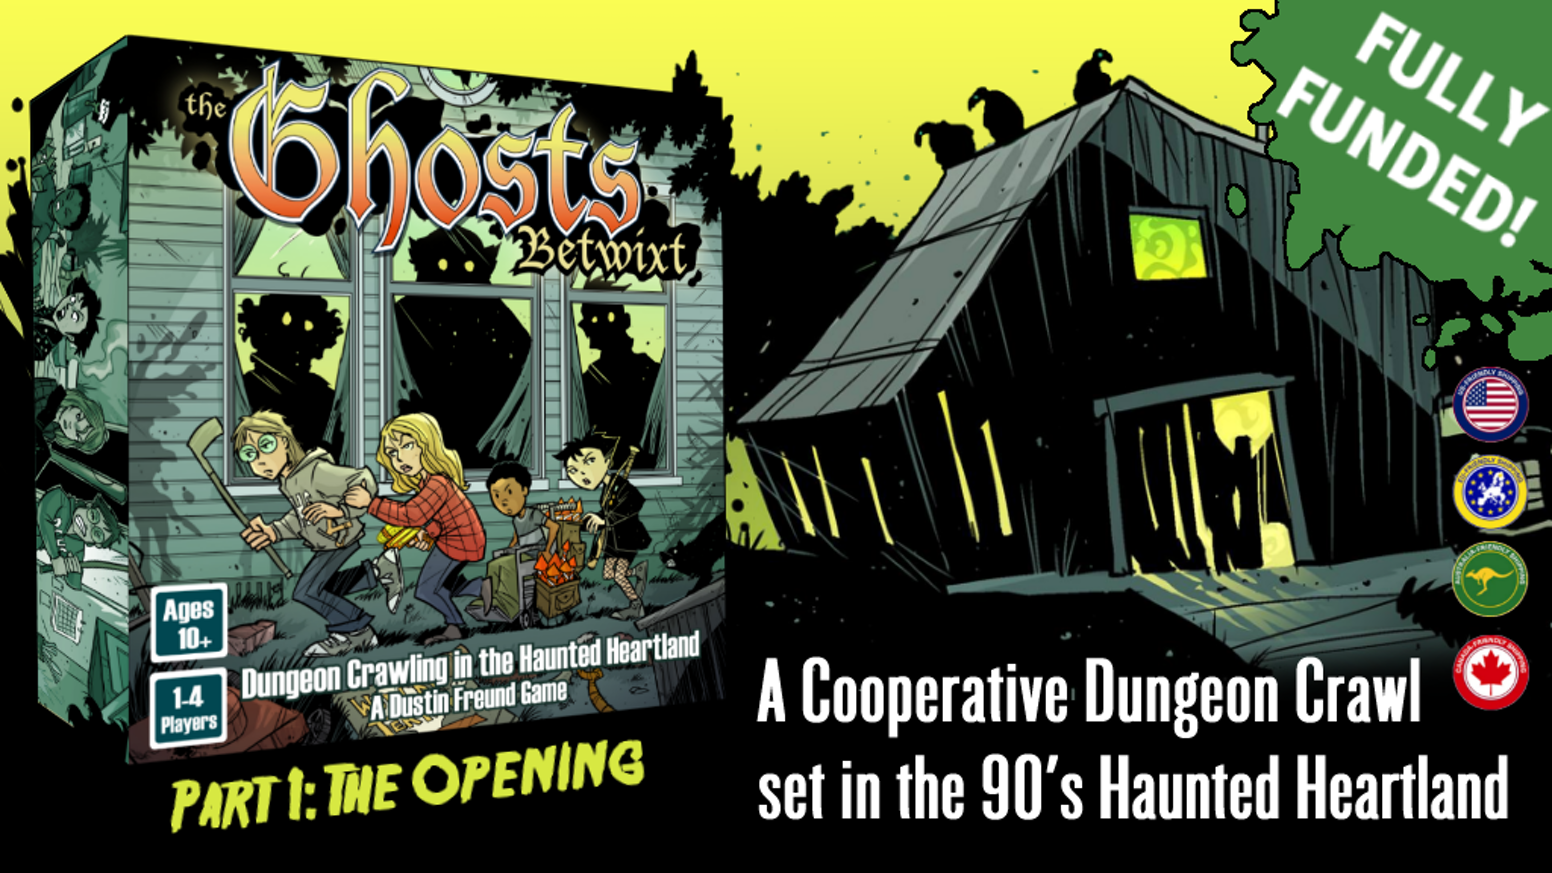 A tactical dice-rolling dungeon crawler set in the 1990s haunted heartland.